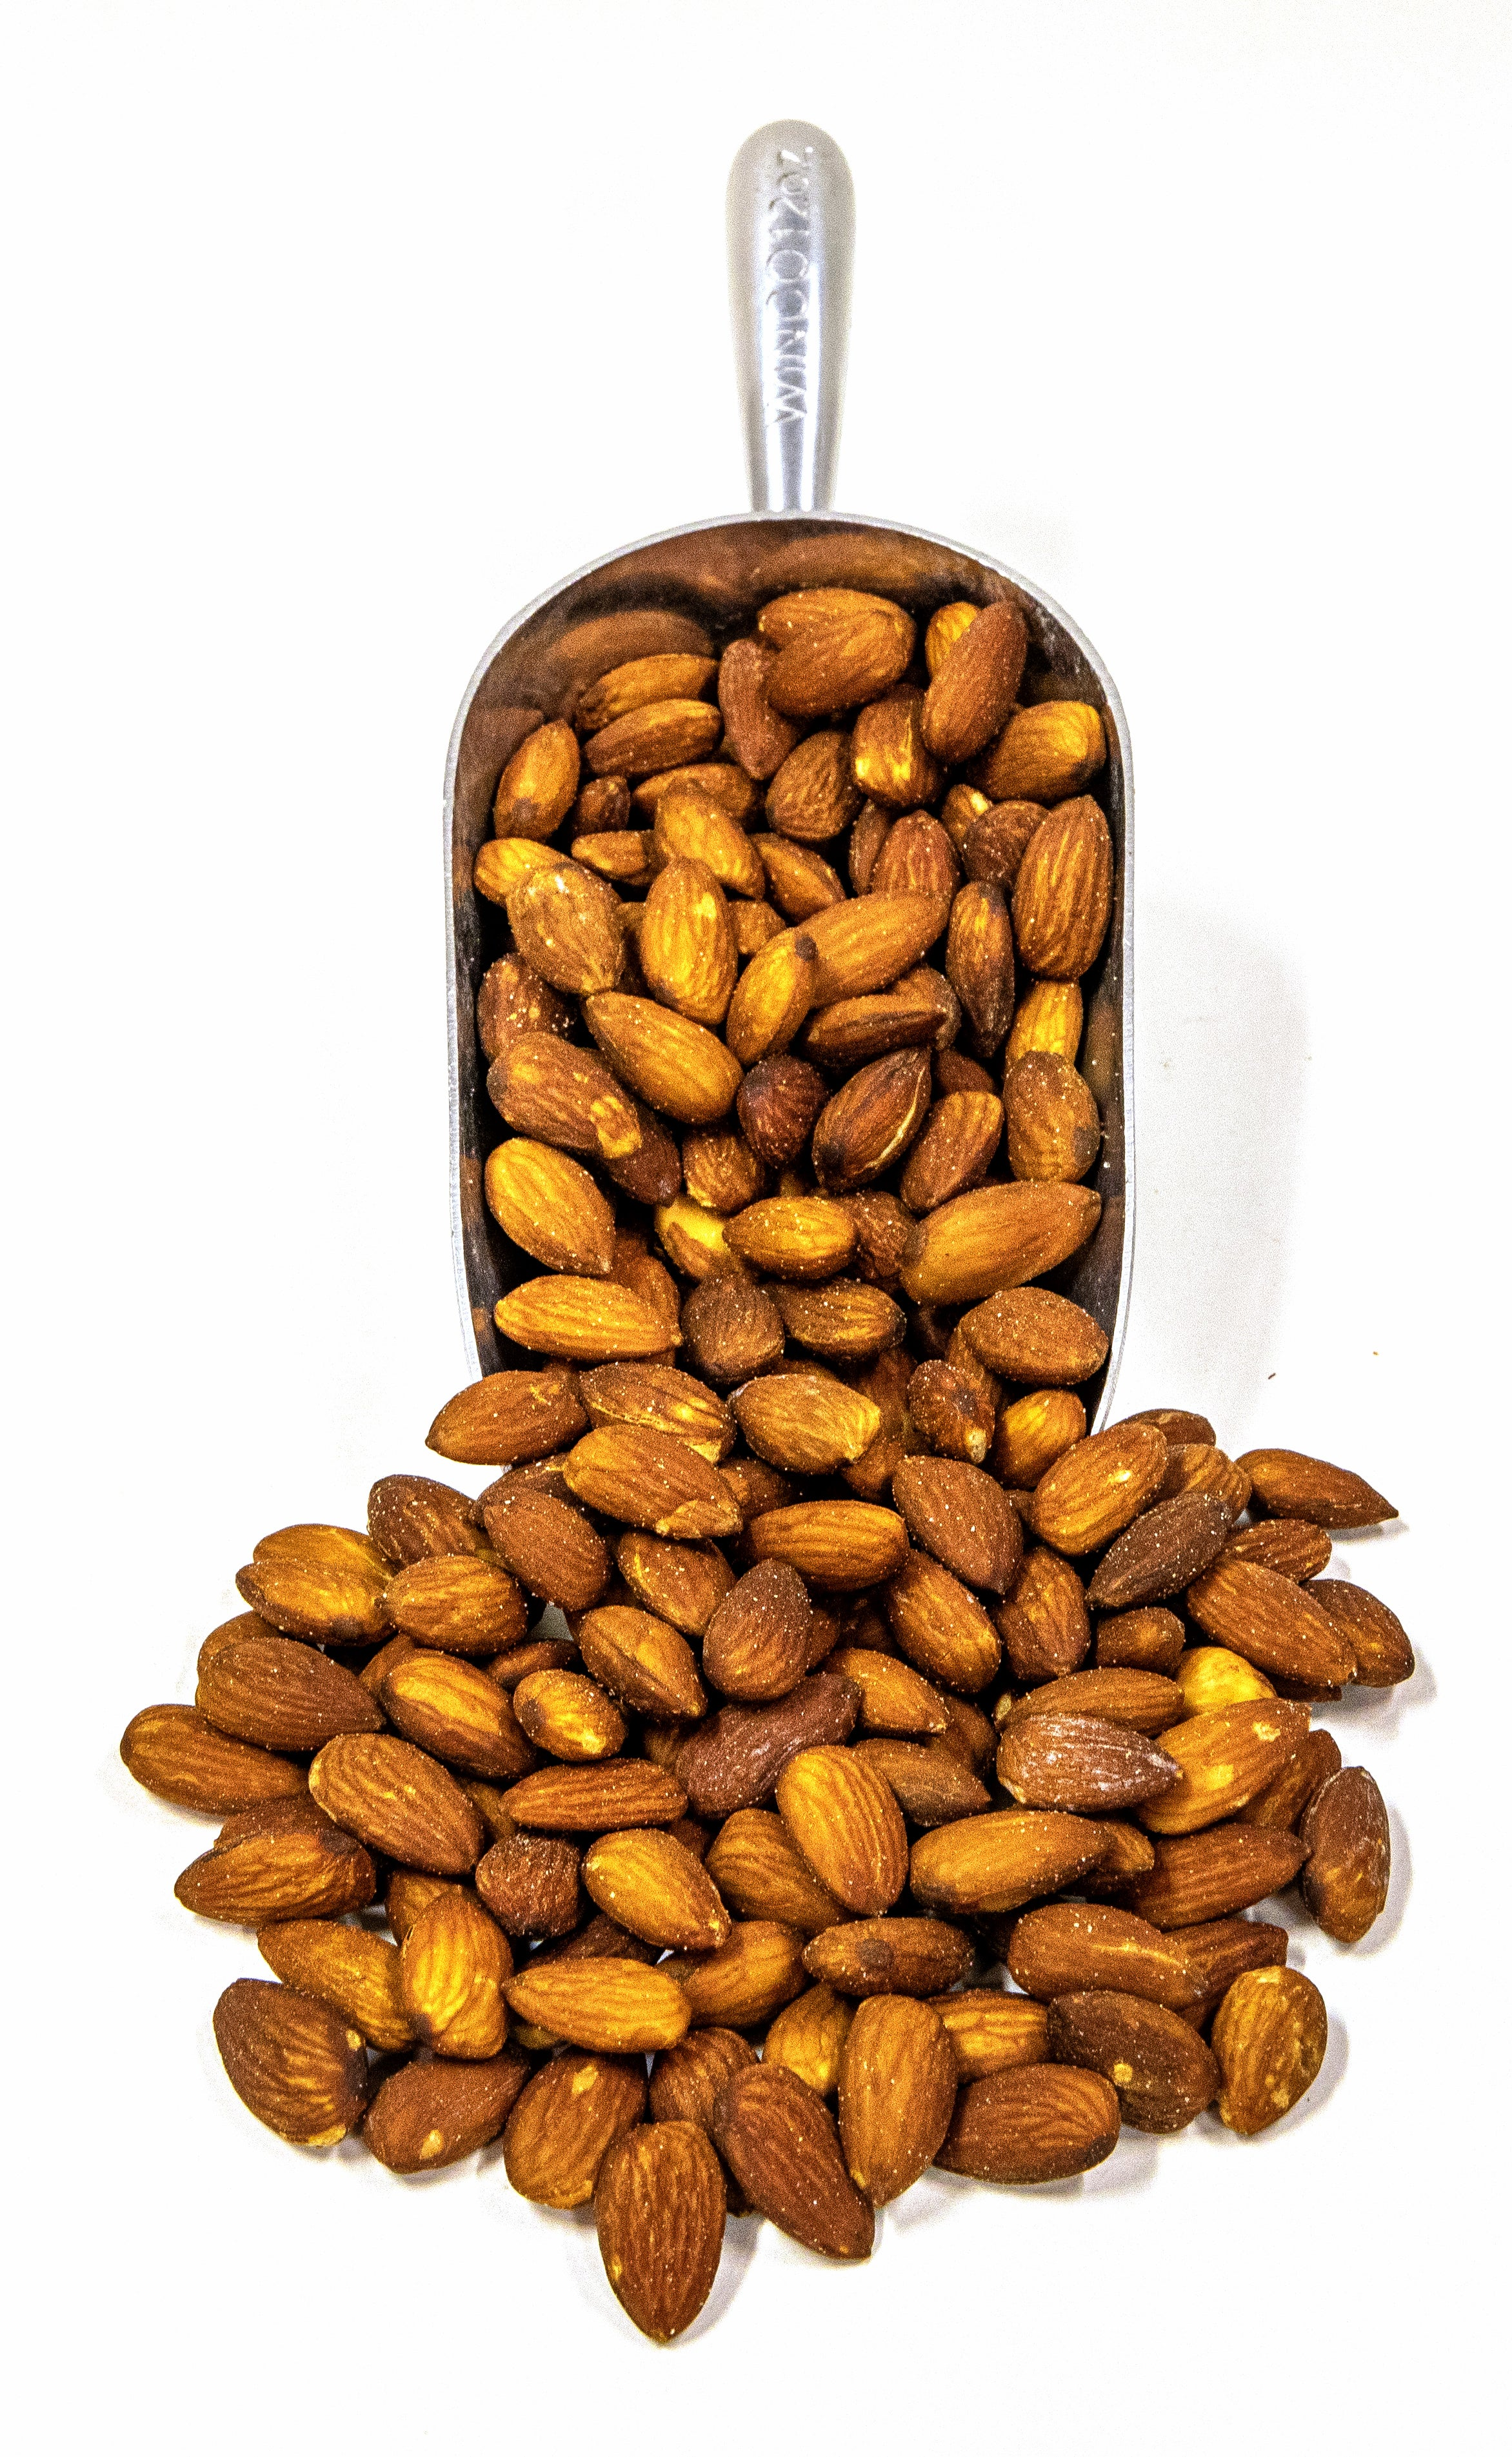 Roasted & Salted Nonpareil Supreme Almonds